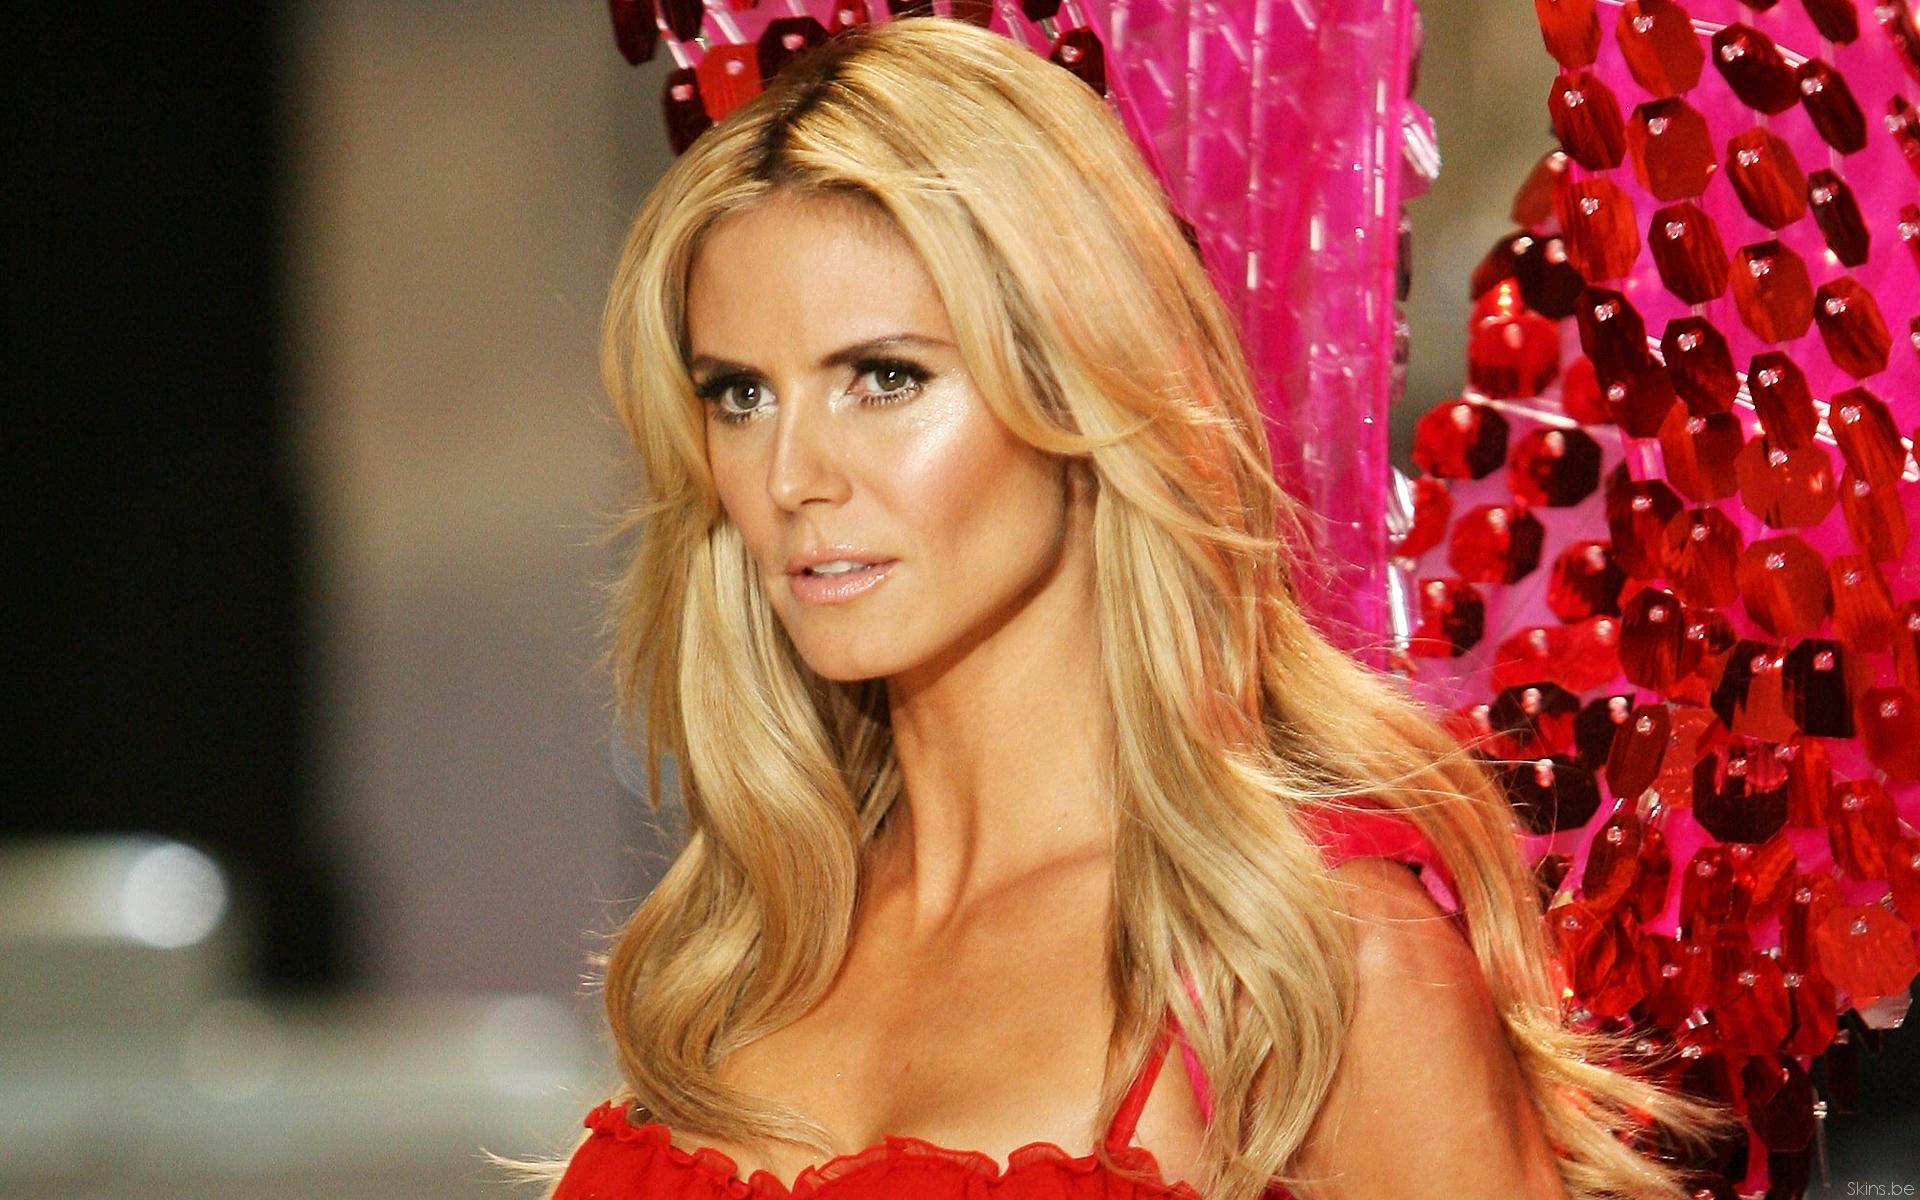 Heidi Klum Wallpapers High Resolution And Quality Download